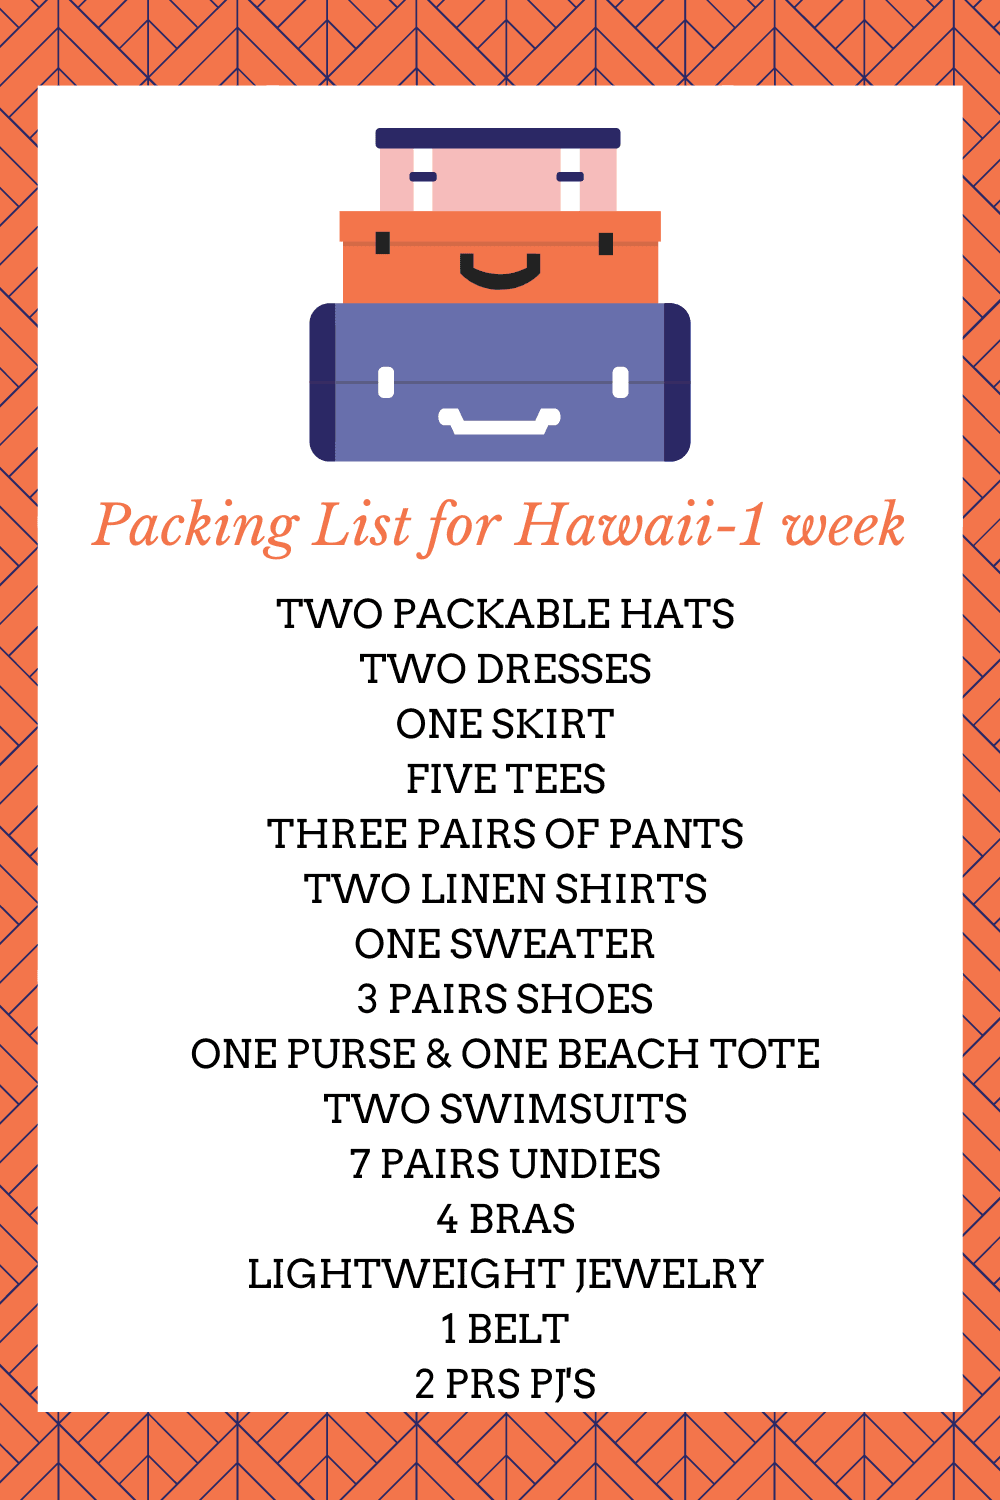 PACKING LIST FOR HAWAII